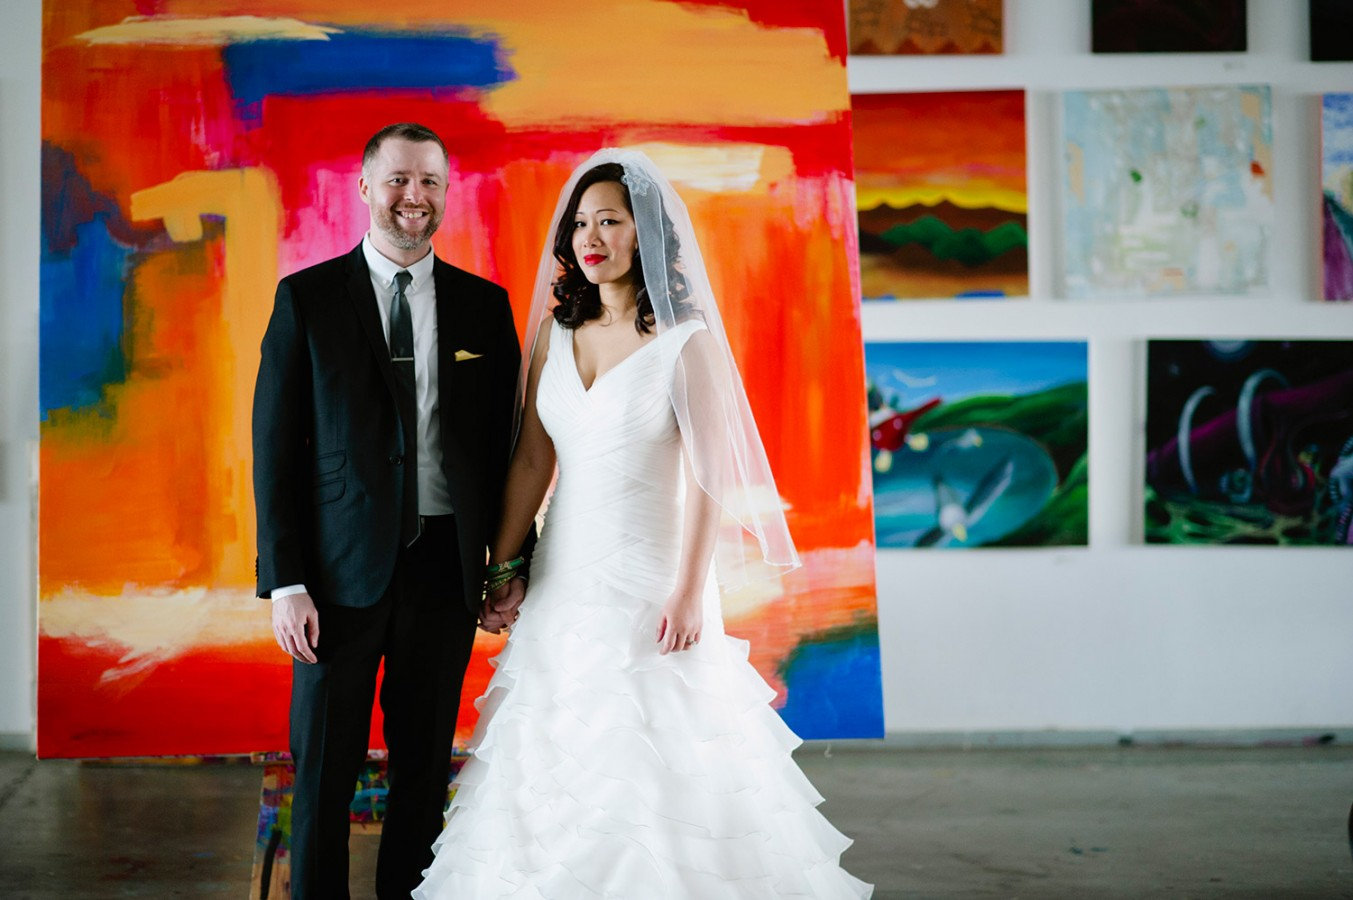 artists-for-humanity-weddings-010